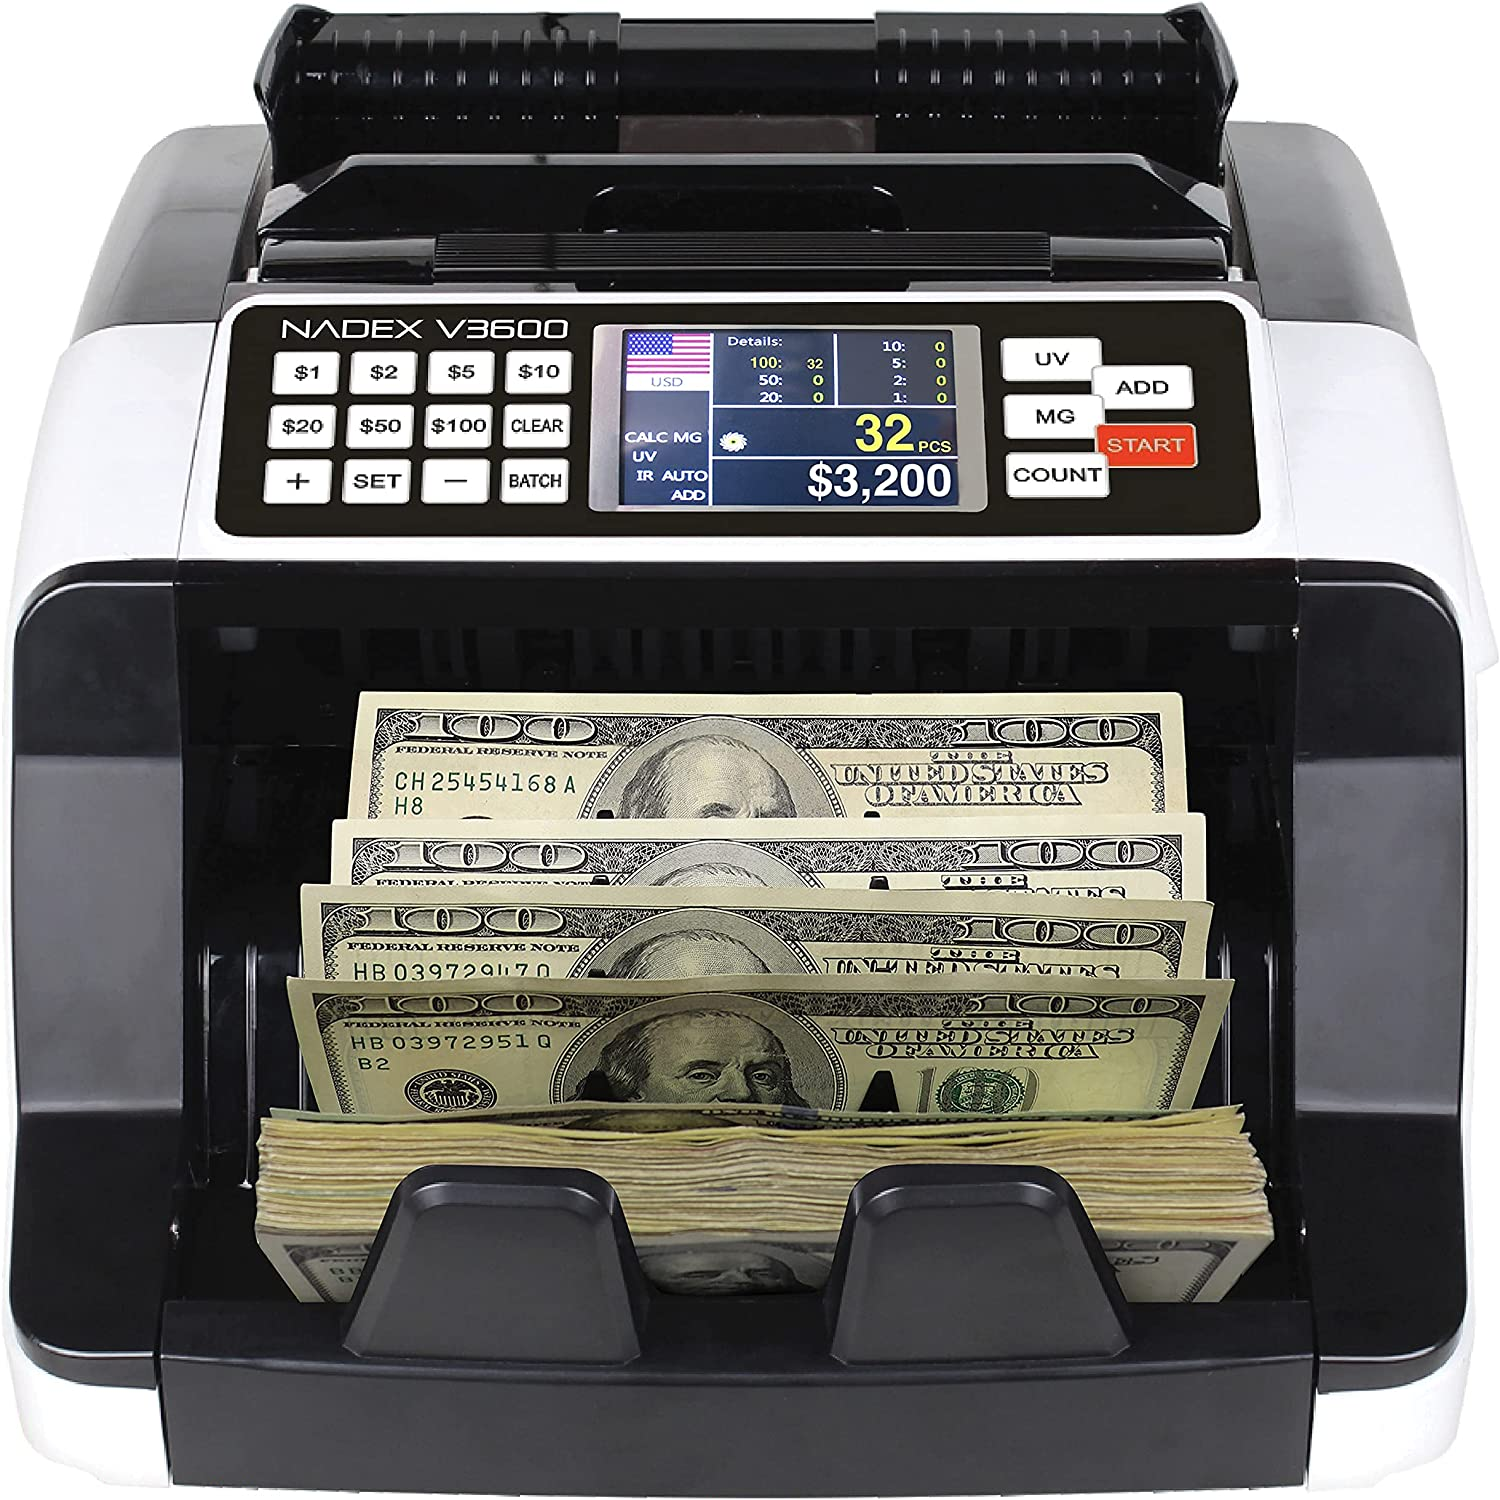 Nadex V3600 Value Display Money Counter - Banking and Retail Grade Fast Accurate Bill Counting with UV/MG/IR Counterfeit Detection - Color Coded Dual TFT Display - Counts 1000 Notes/Min : Office Products